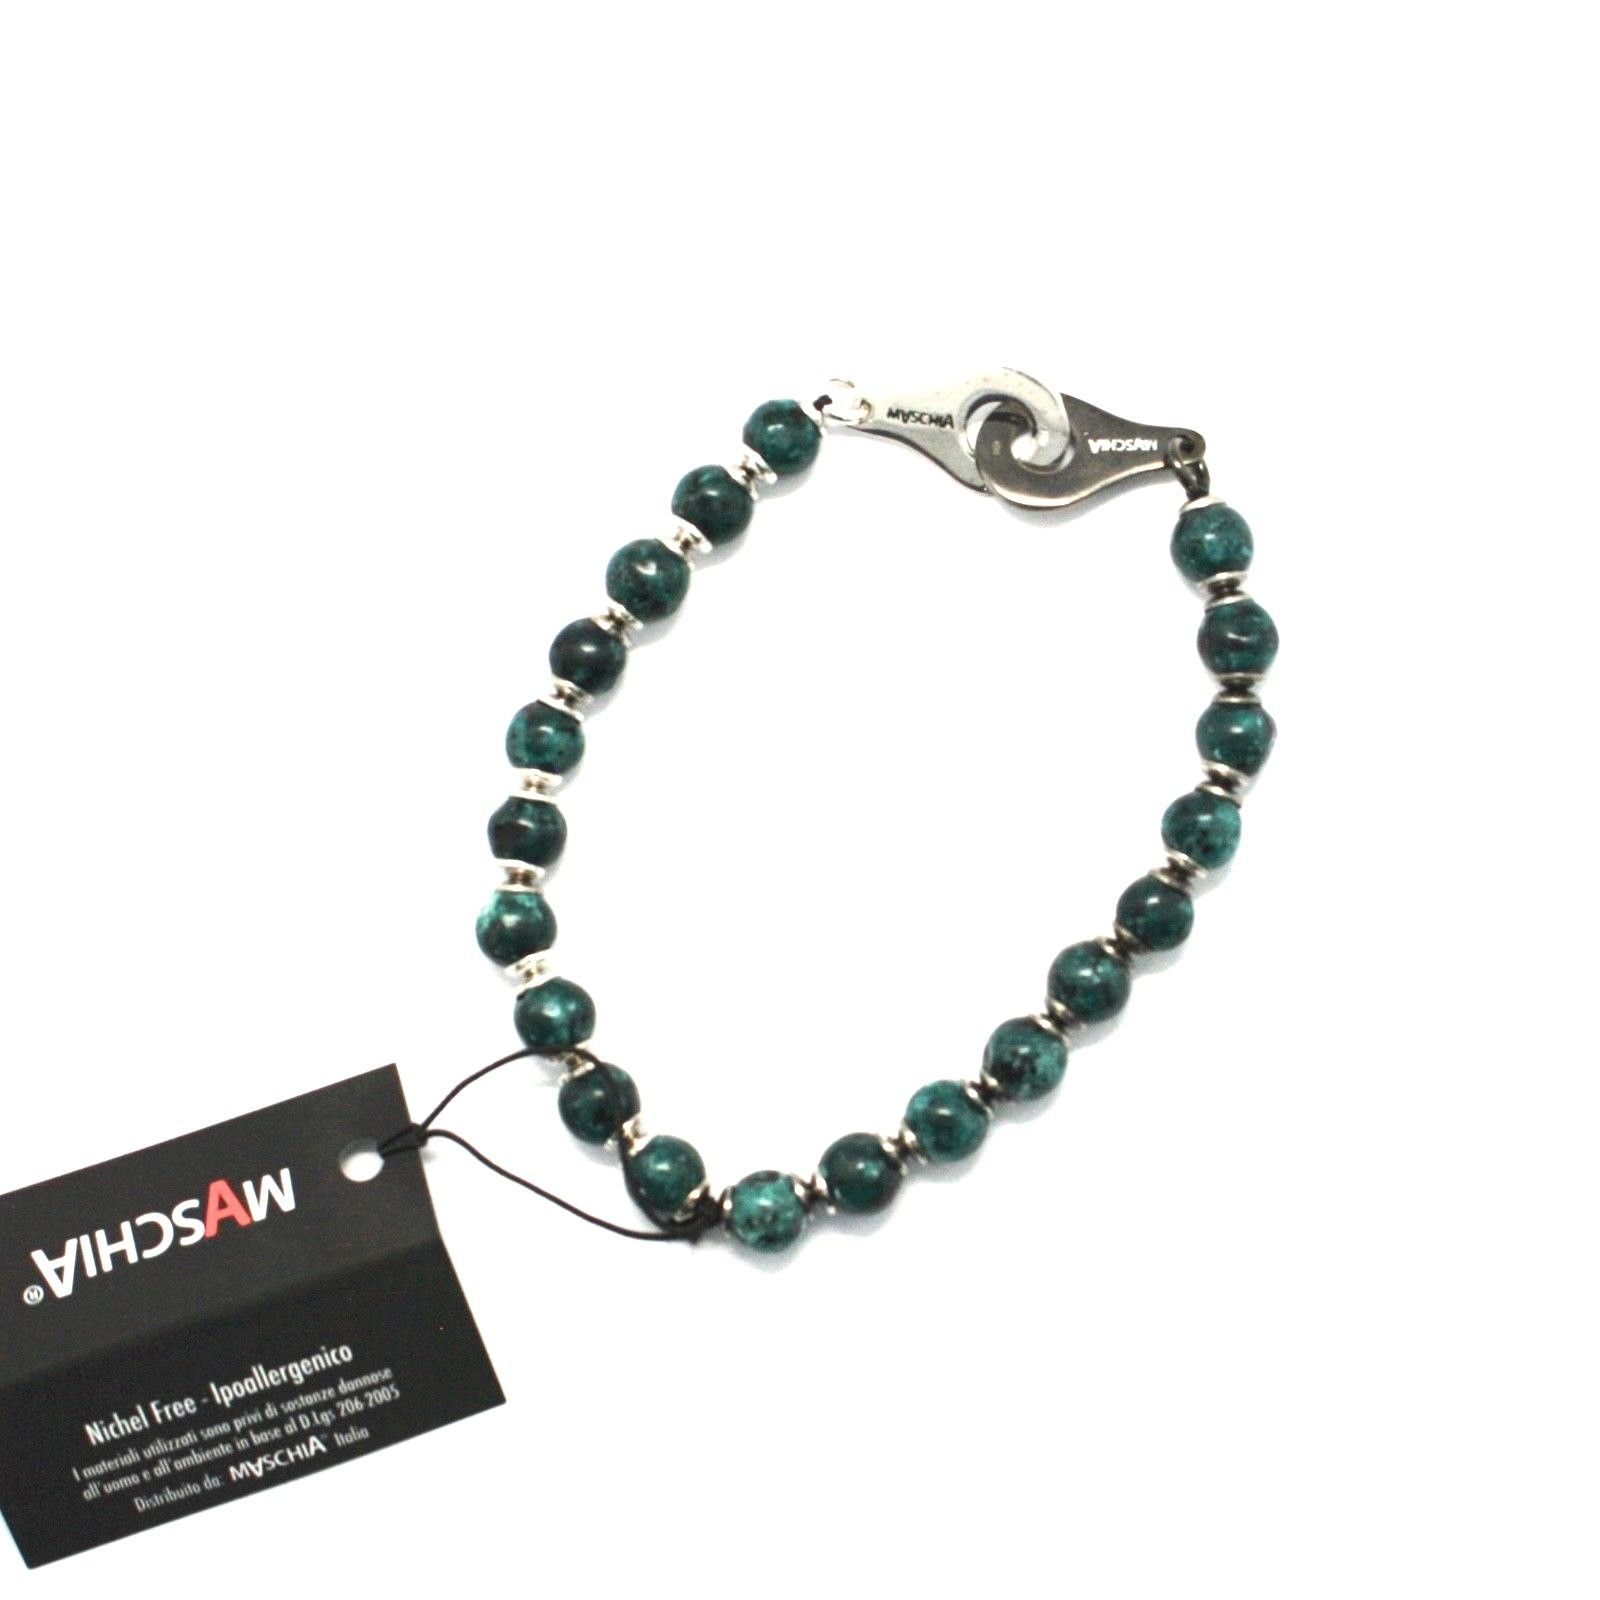 SILVER 925 BRACELET WITH JASPER GREEN BSP-2 MADE IN ITALY BY MASCHIA